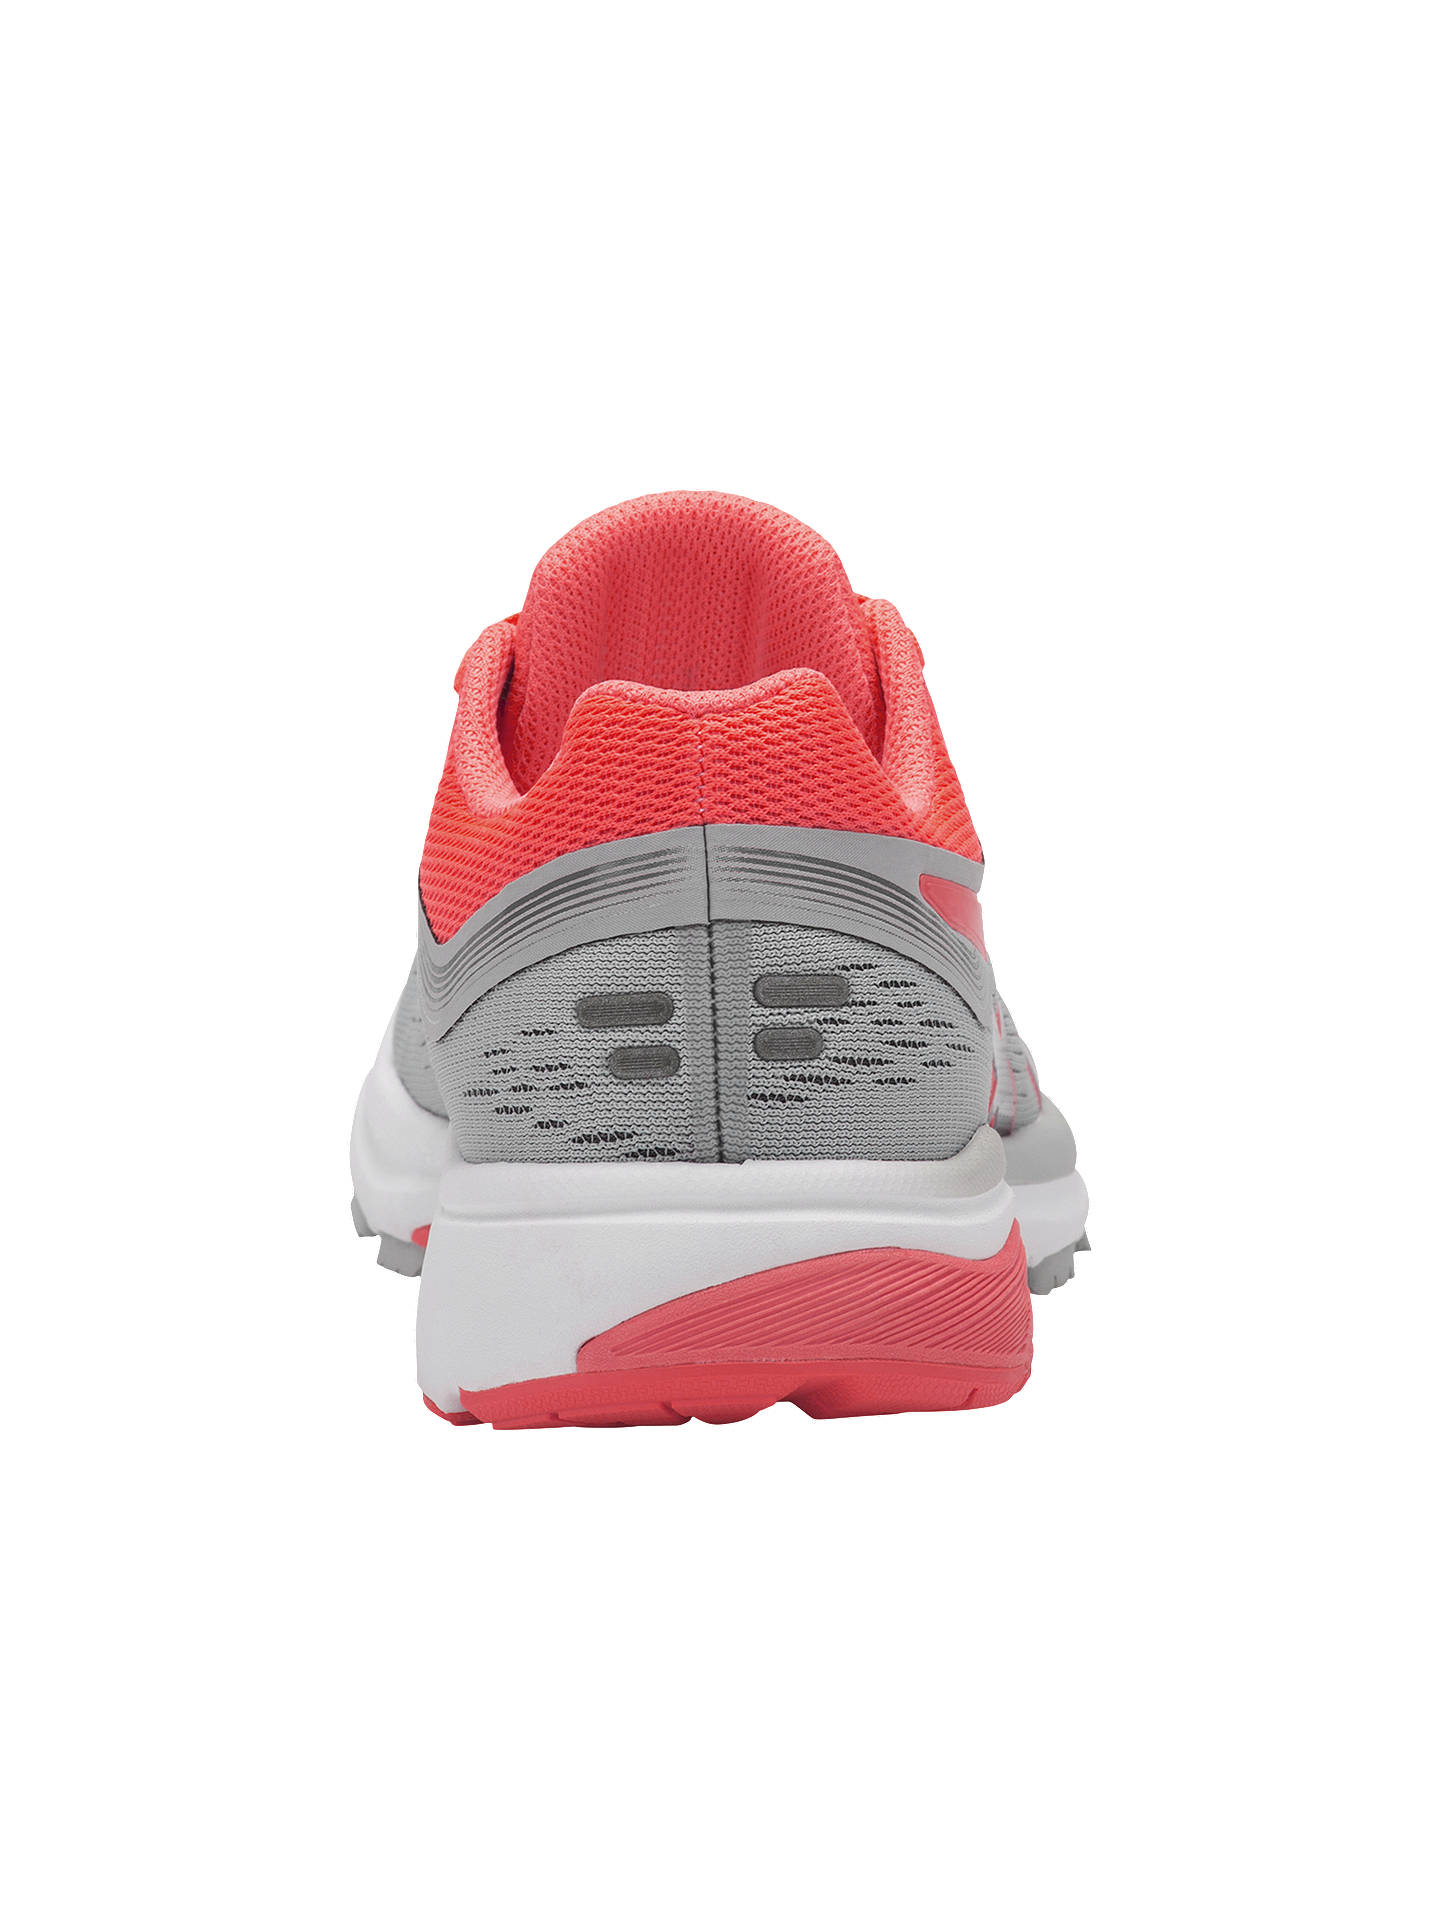 Buy ASICS GT-1000 7 Women's Running Shoes, Mid Grey/Flash Coral, 4 Online at johnlewis.com